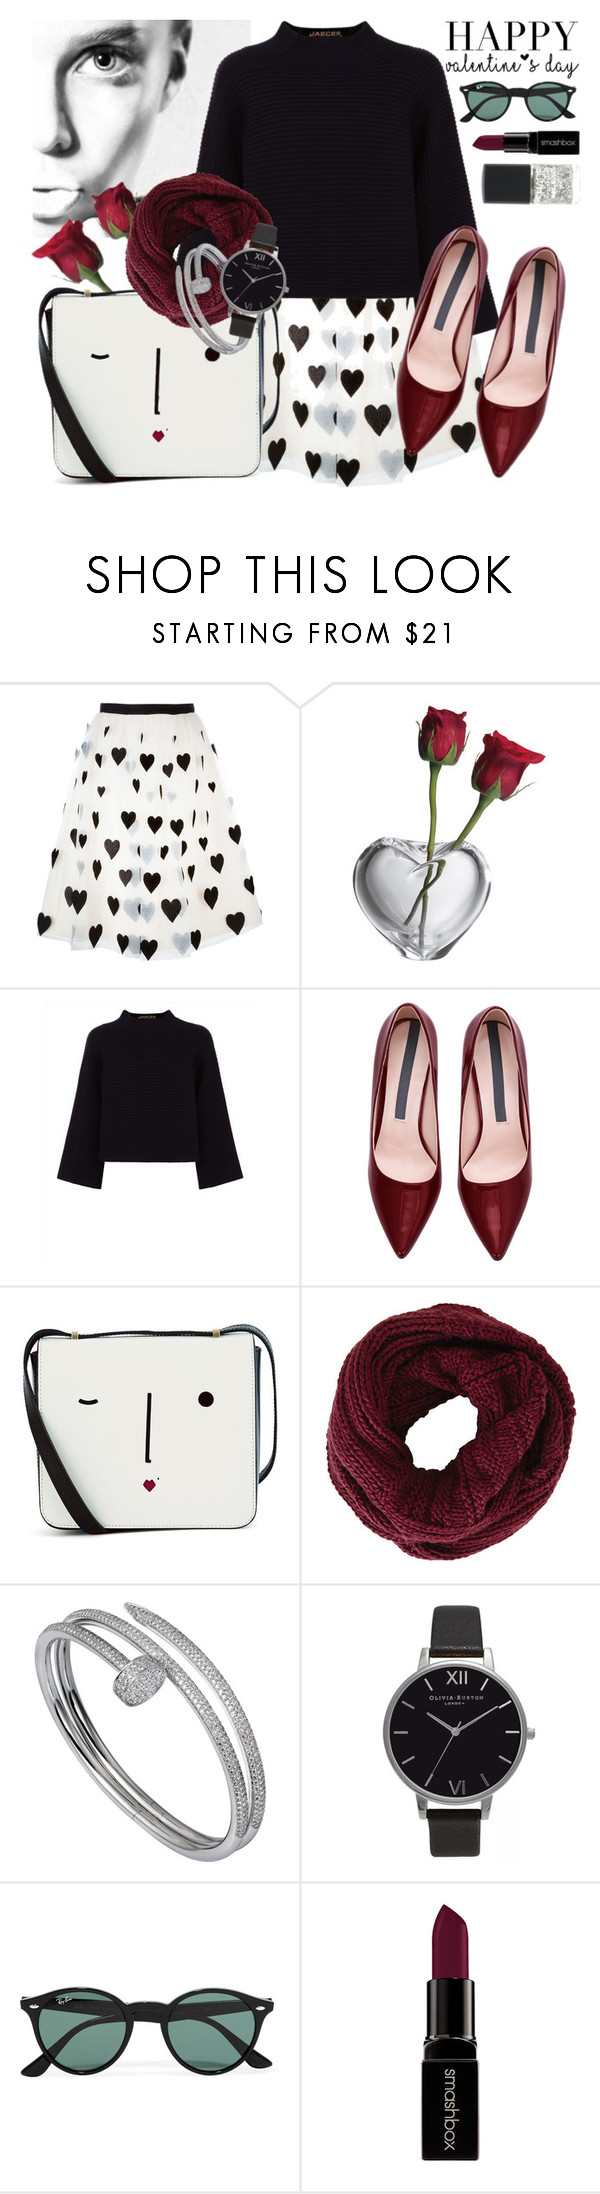 """""""HAPPY Valentine's day to all of you!"""" by ania ❤ liked on Polyvore featuring Alice + Olivia, Simon Pearce, Jaeger, Lulu Guinness, BCBGMAXAZRIA, Cartier, Olivia Burton, Ray-Ban, Smashbox and SHADE Collection"""